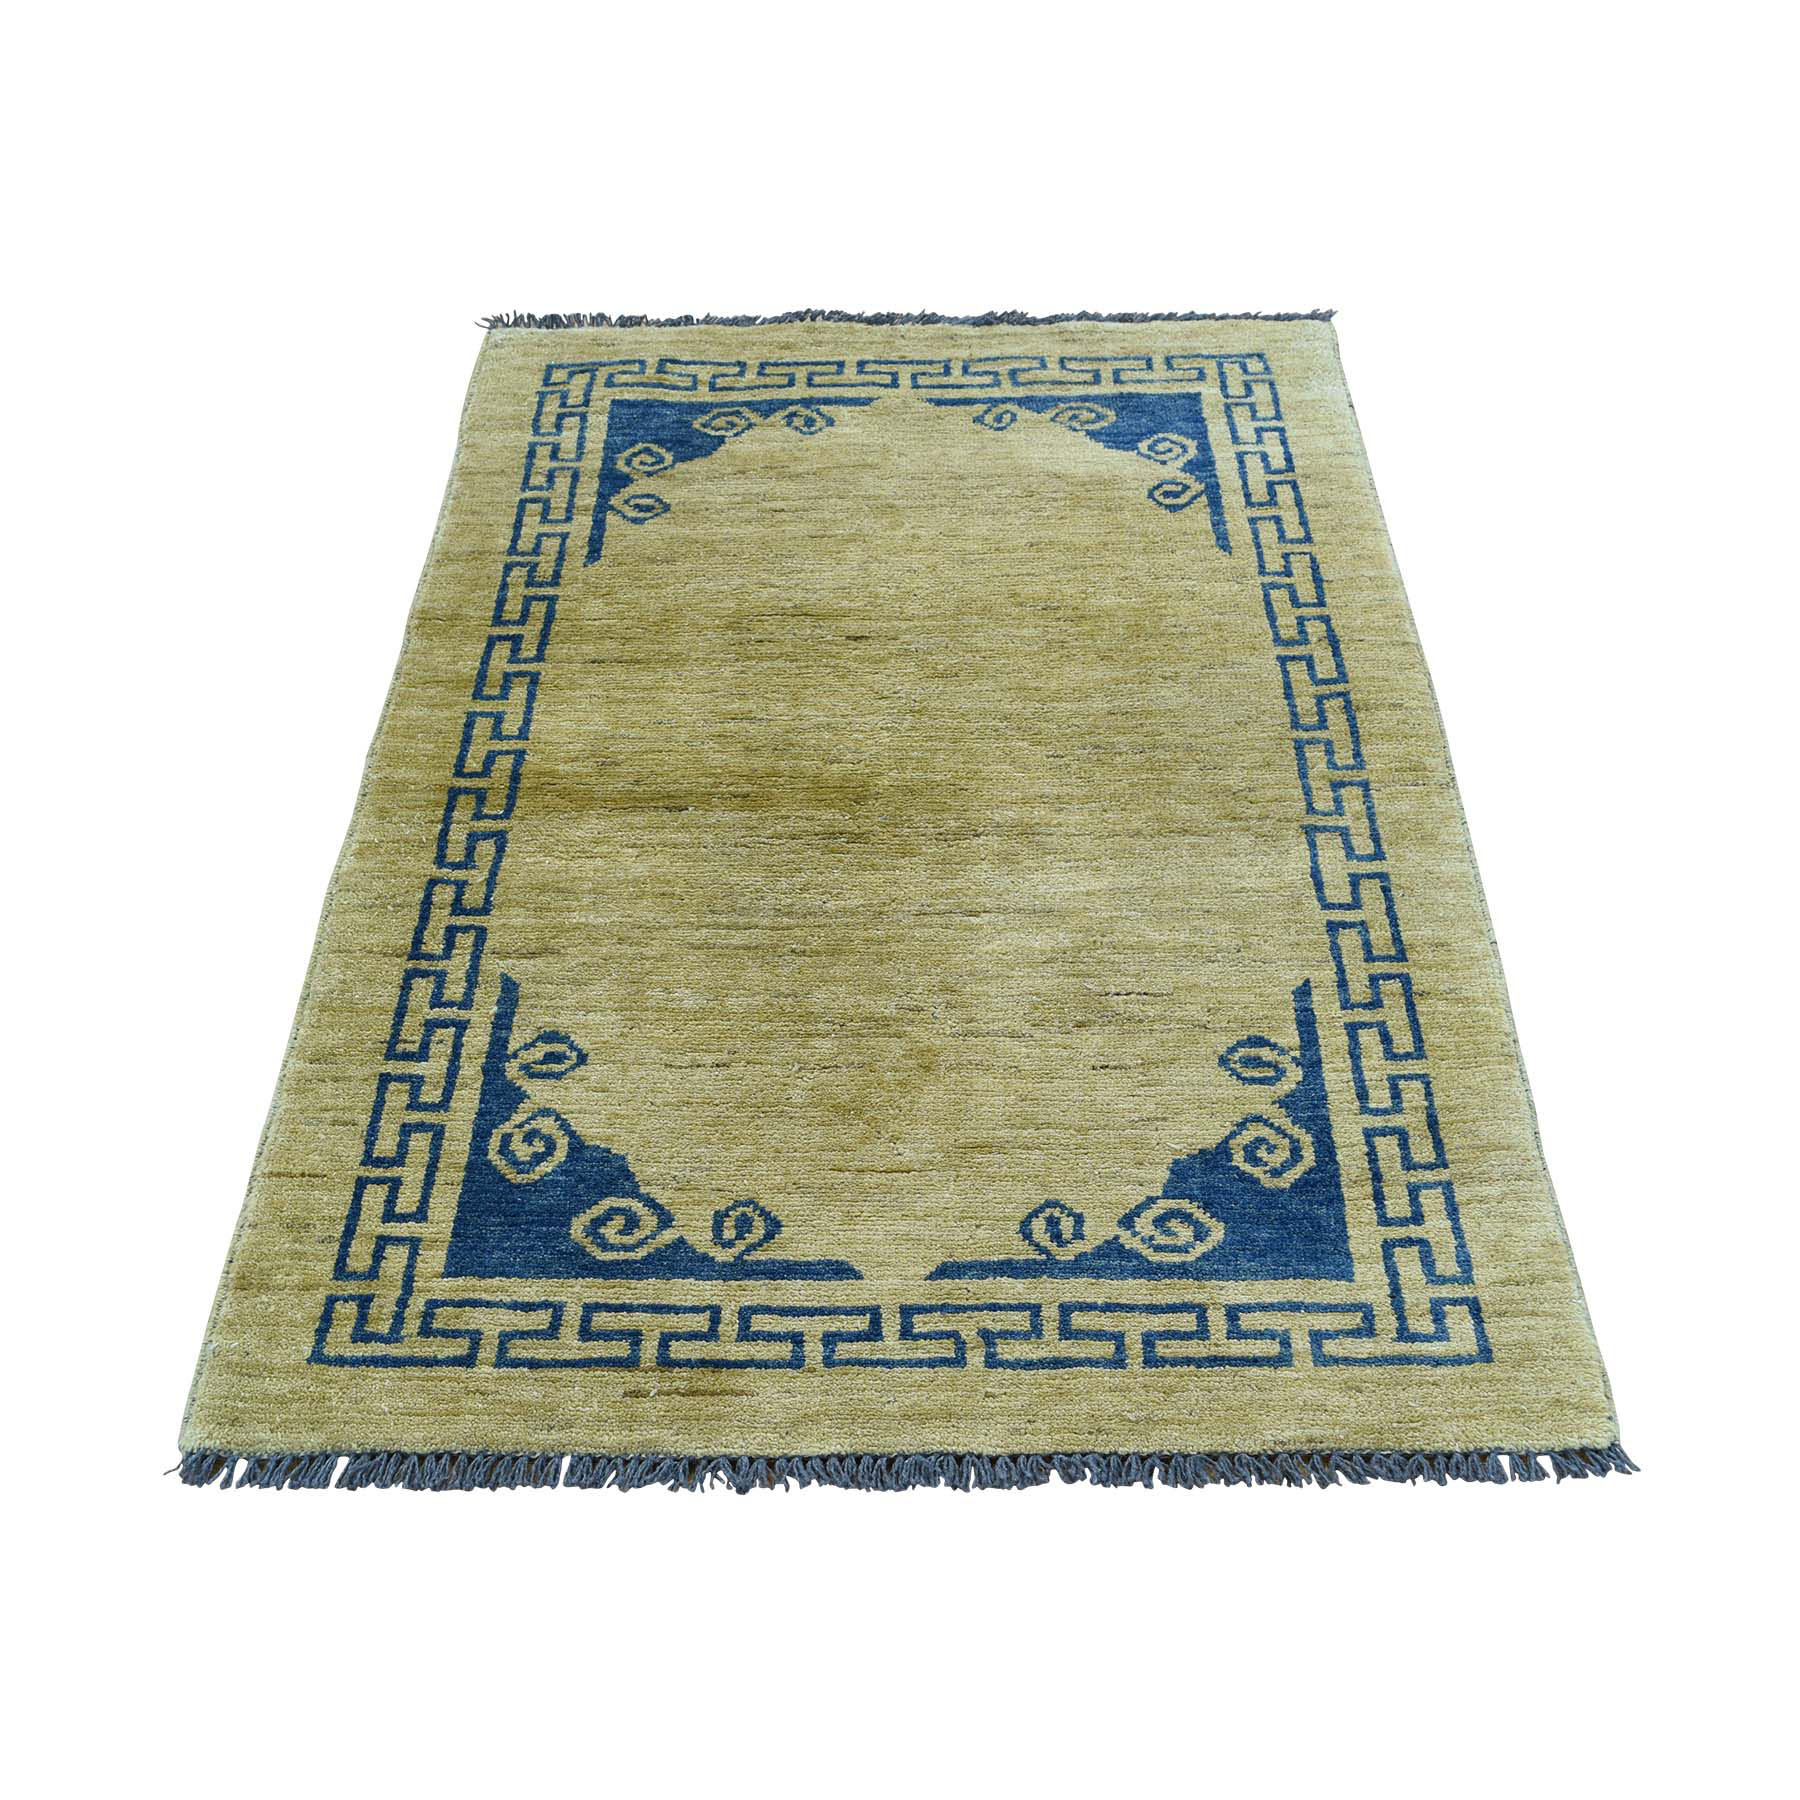 "2'9""X4'1"" Hand-Knotted Peshawar With Knotan Design Rug moacb6ae"